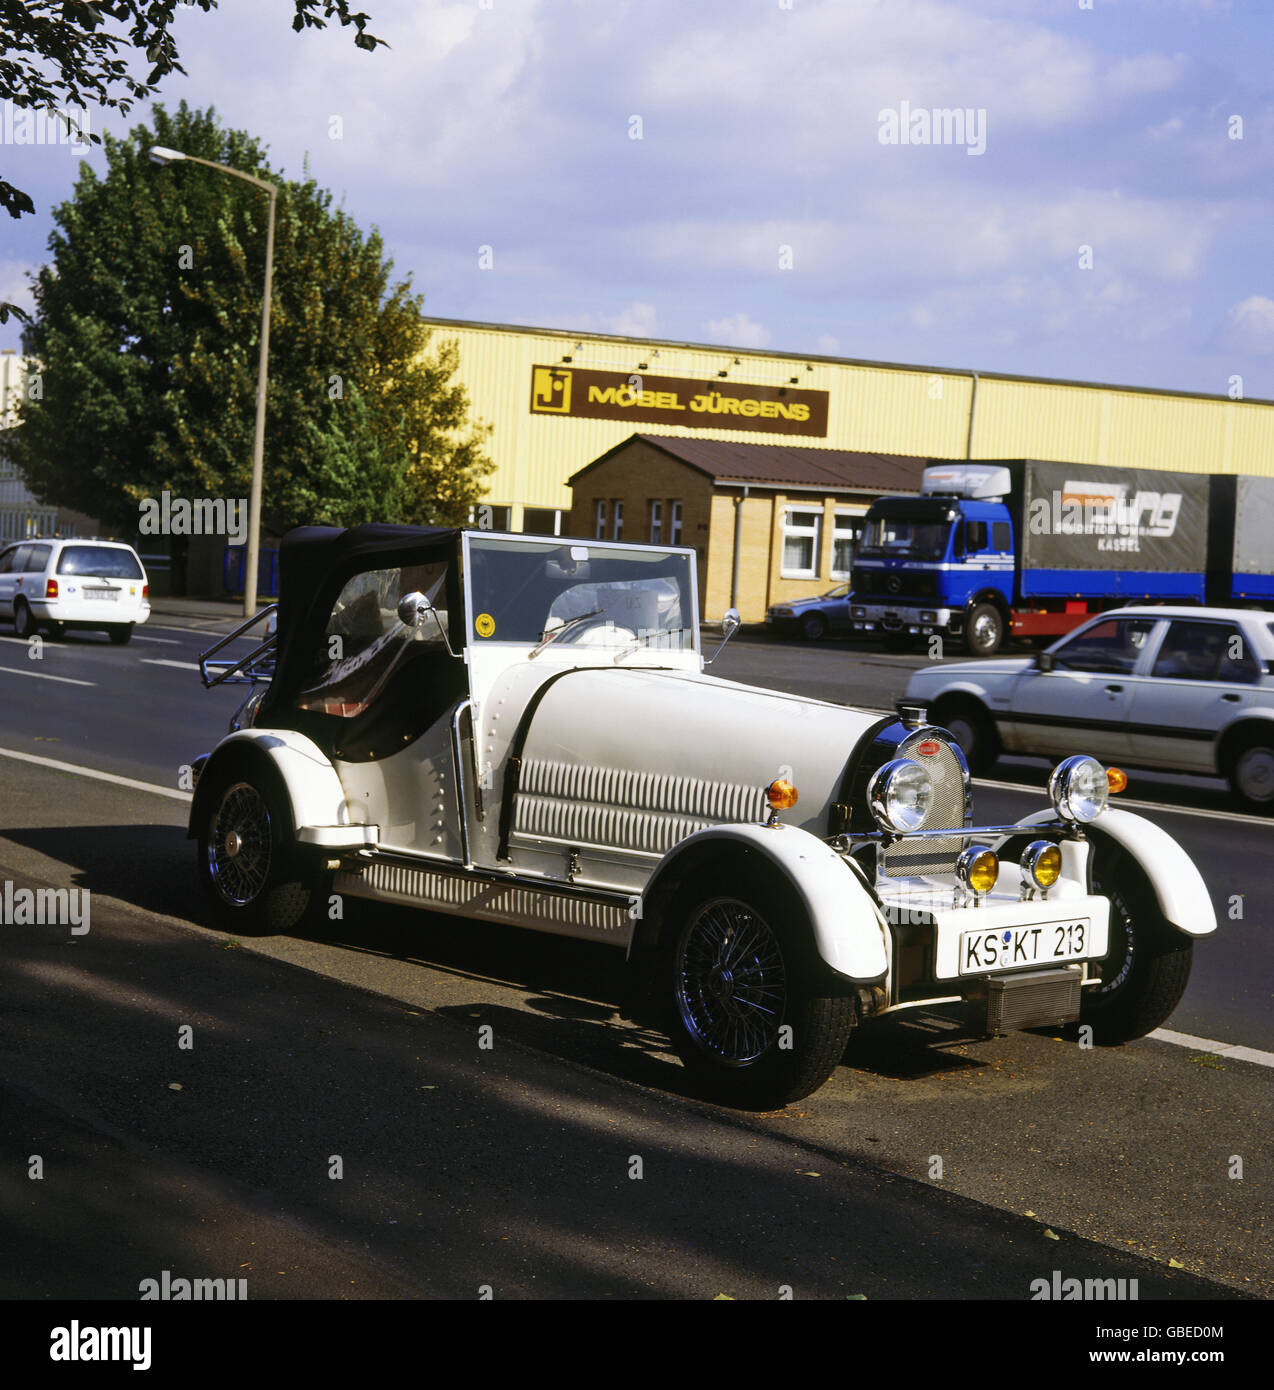 transport / transportation, car, vehicle variants, veteran car, Bugatti, historic, historical, automobile, automobiles, - Stock Image